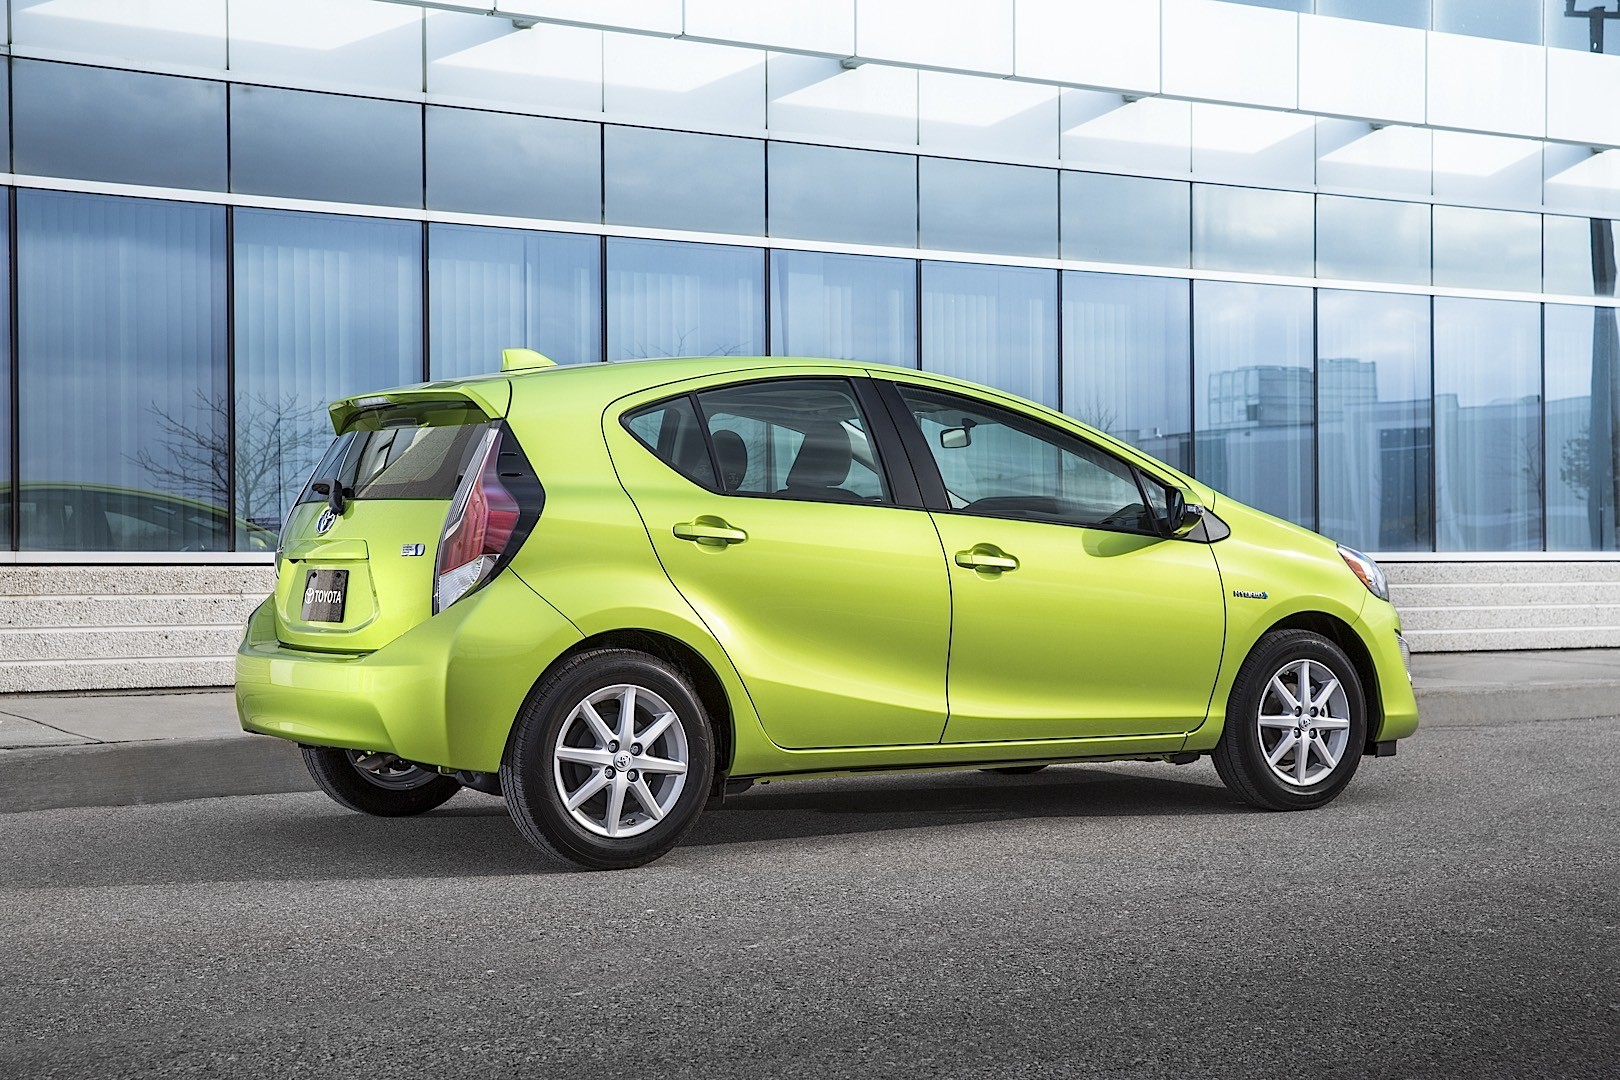 Toyota Touch Up Paint >> TOYOTA Prius C (Aqua) specs & photos - 2015, 2016, 2017 ...